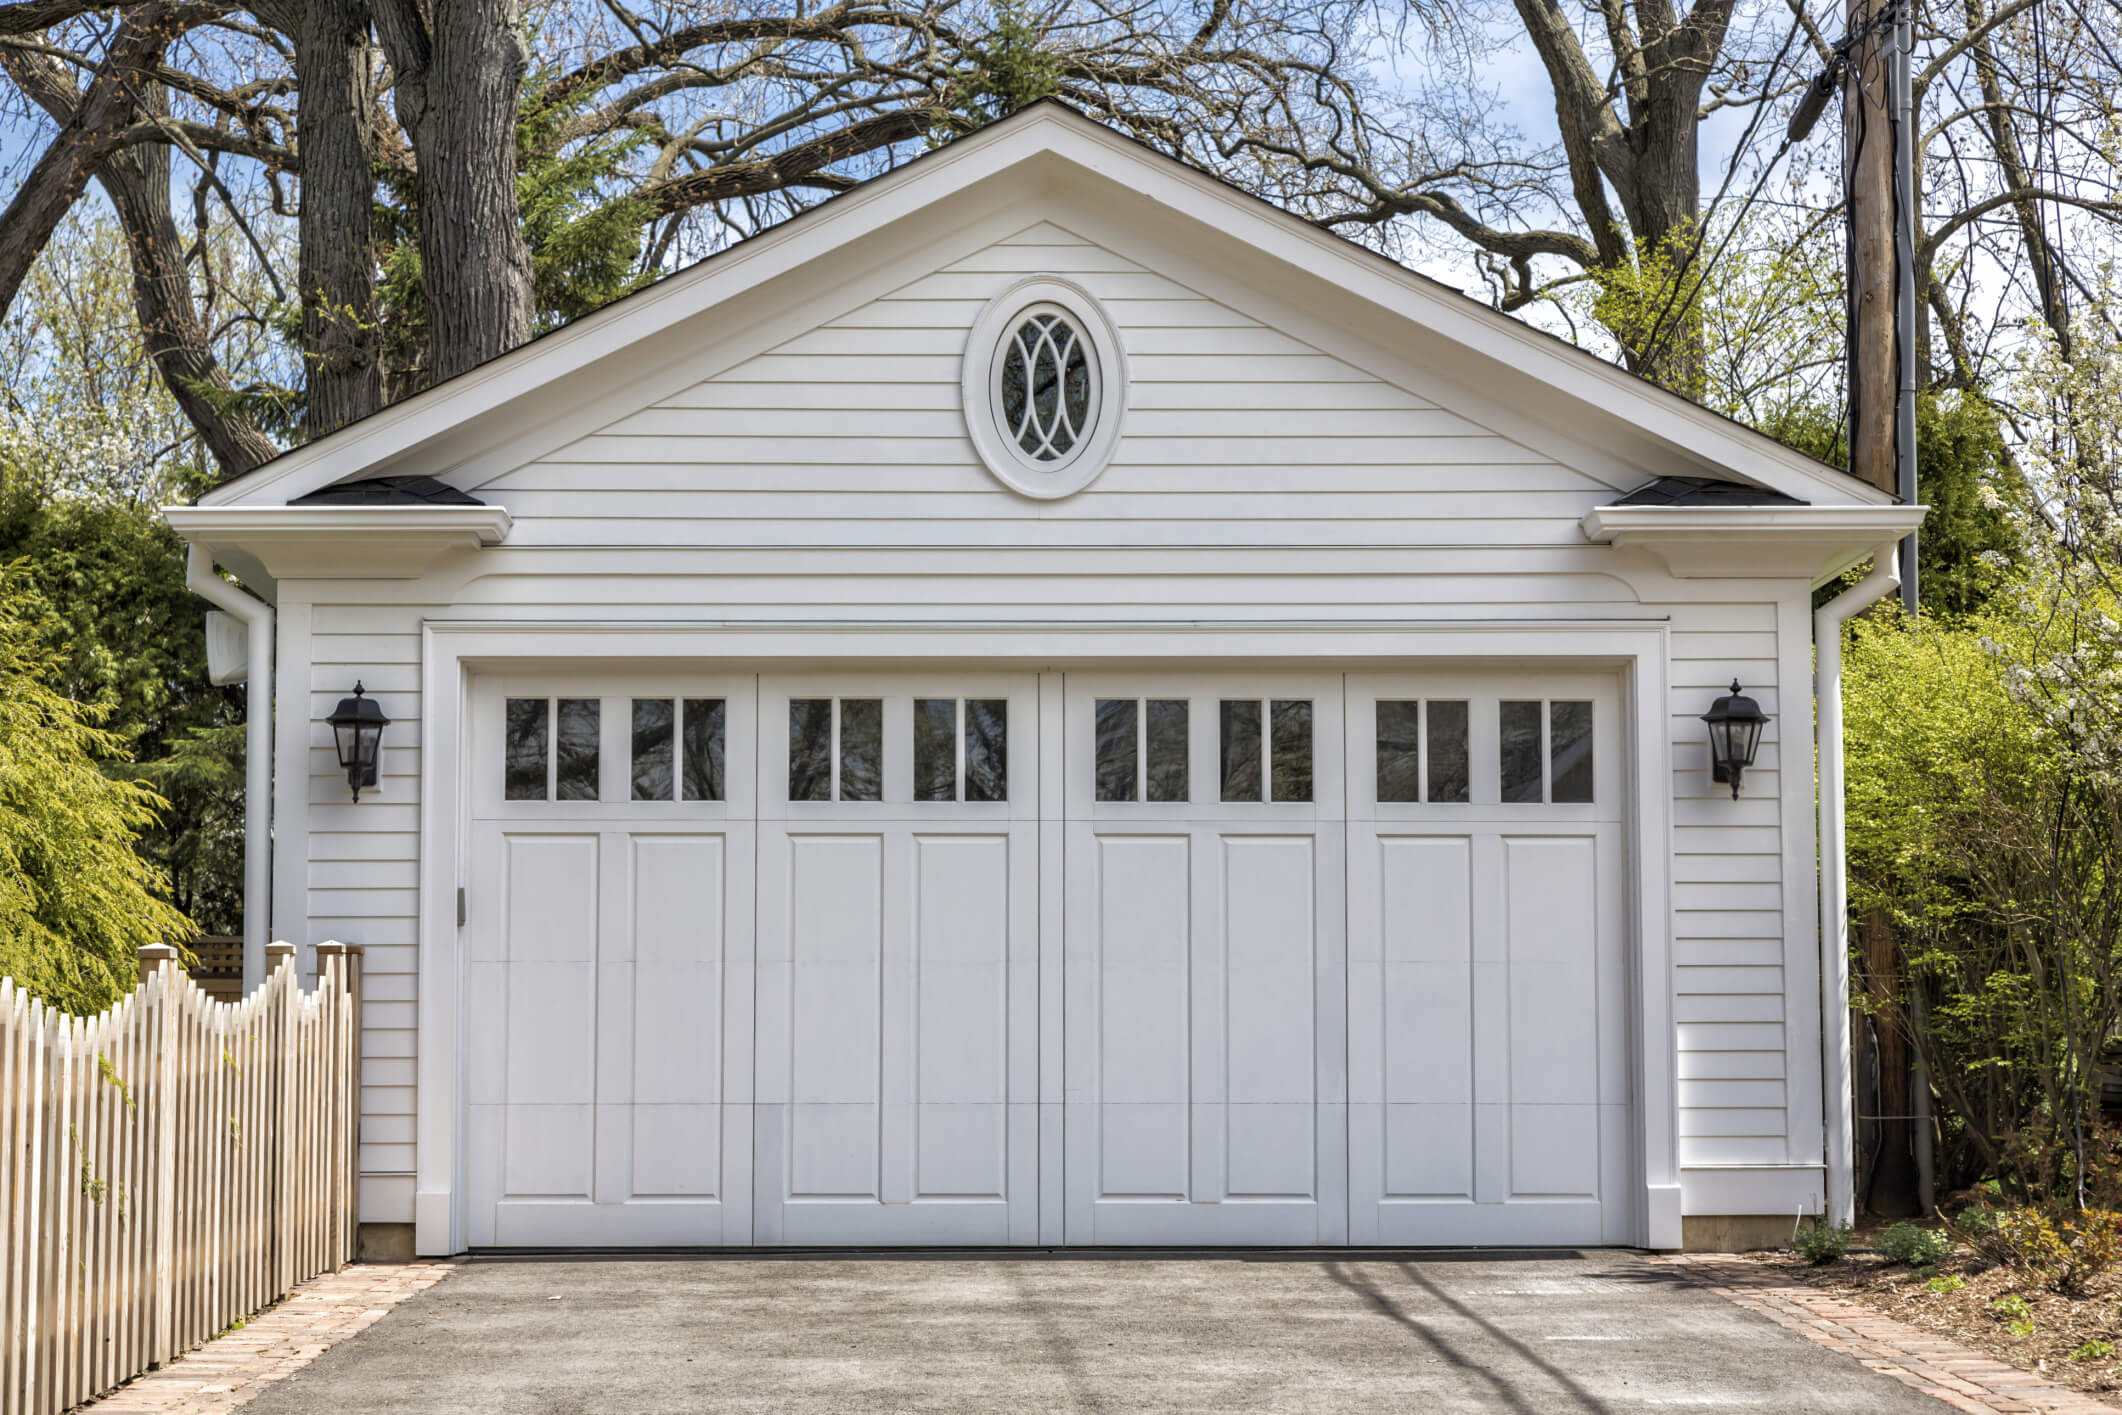 Components of Your Garage Door Explained